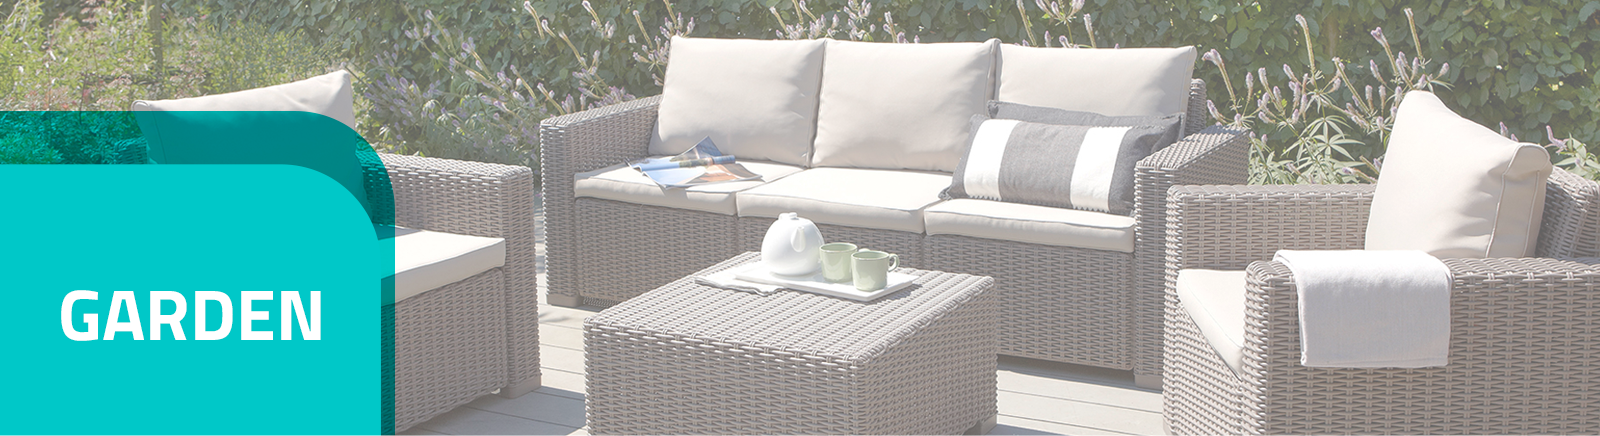 Garden and patio furniture and furniture sets